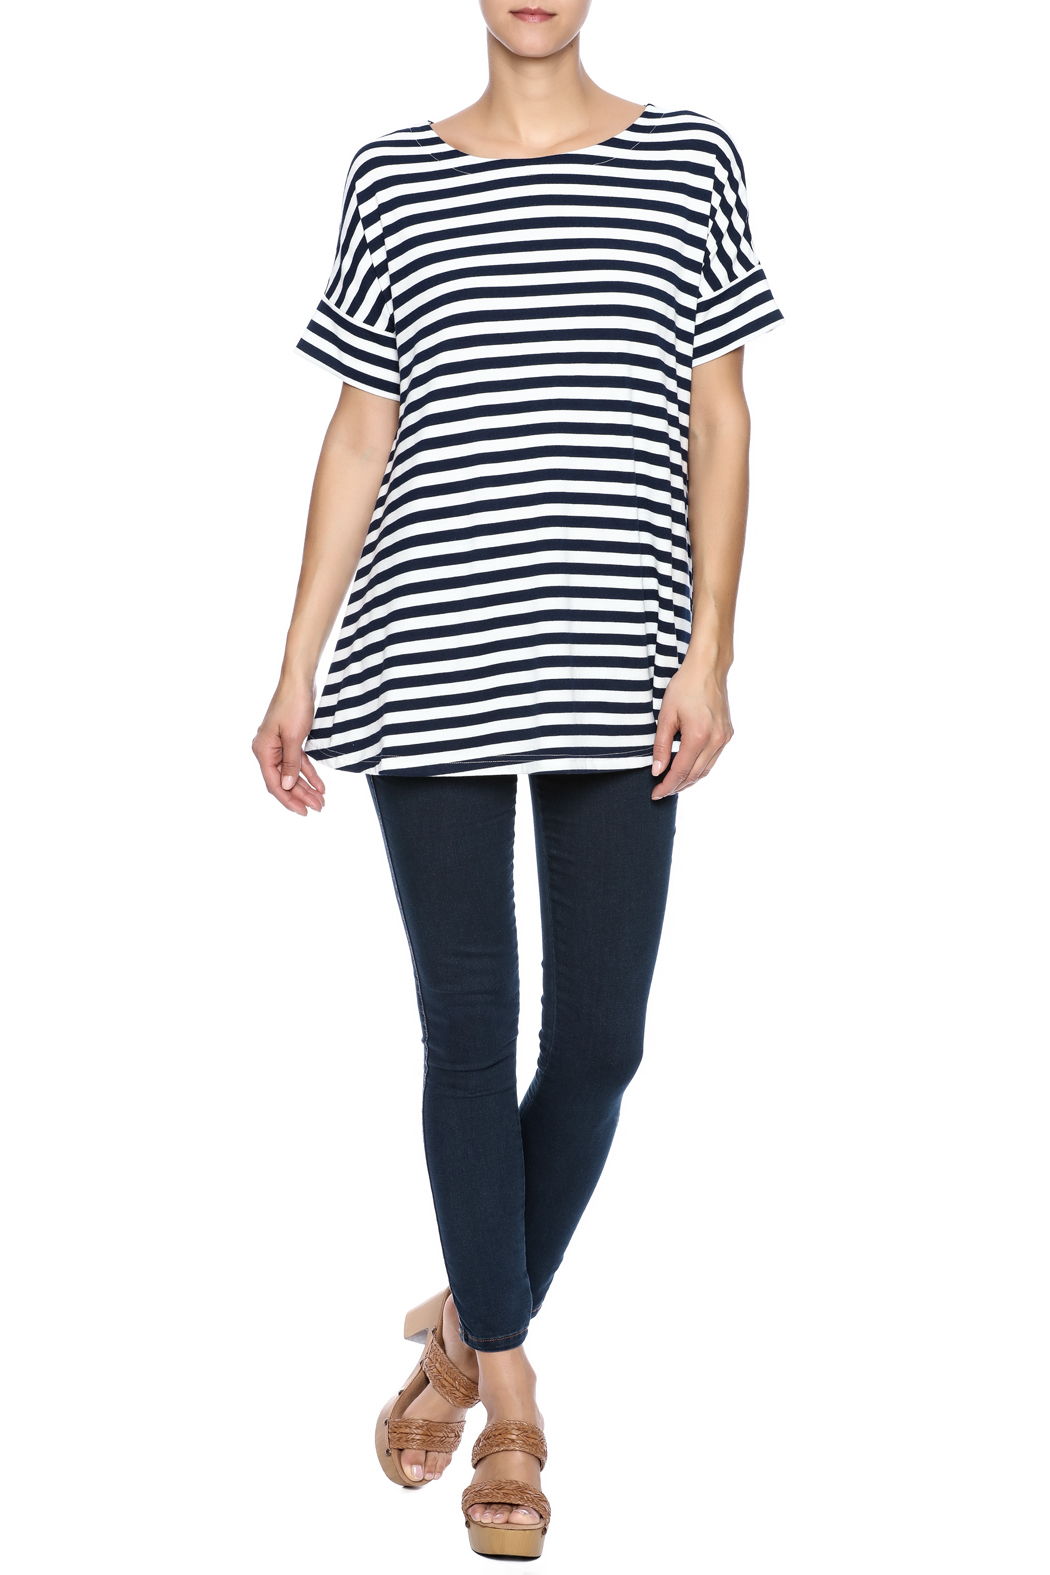 Simply Noelle Nautical Striped Tunic - Front Full Image